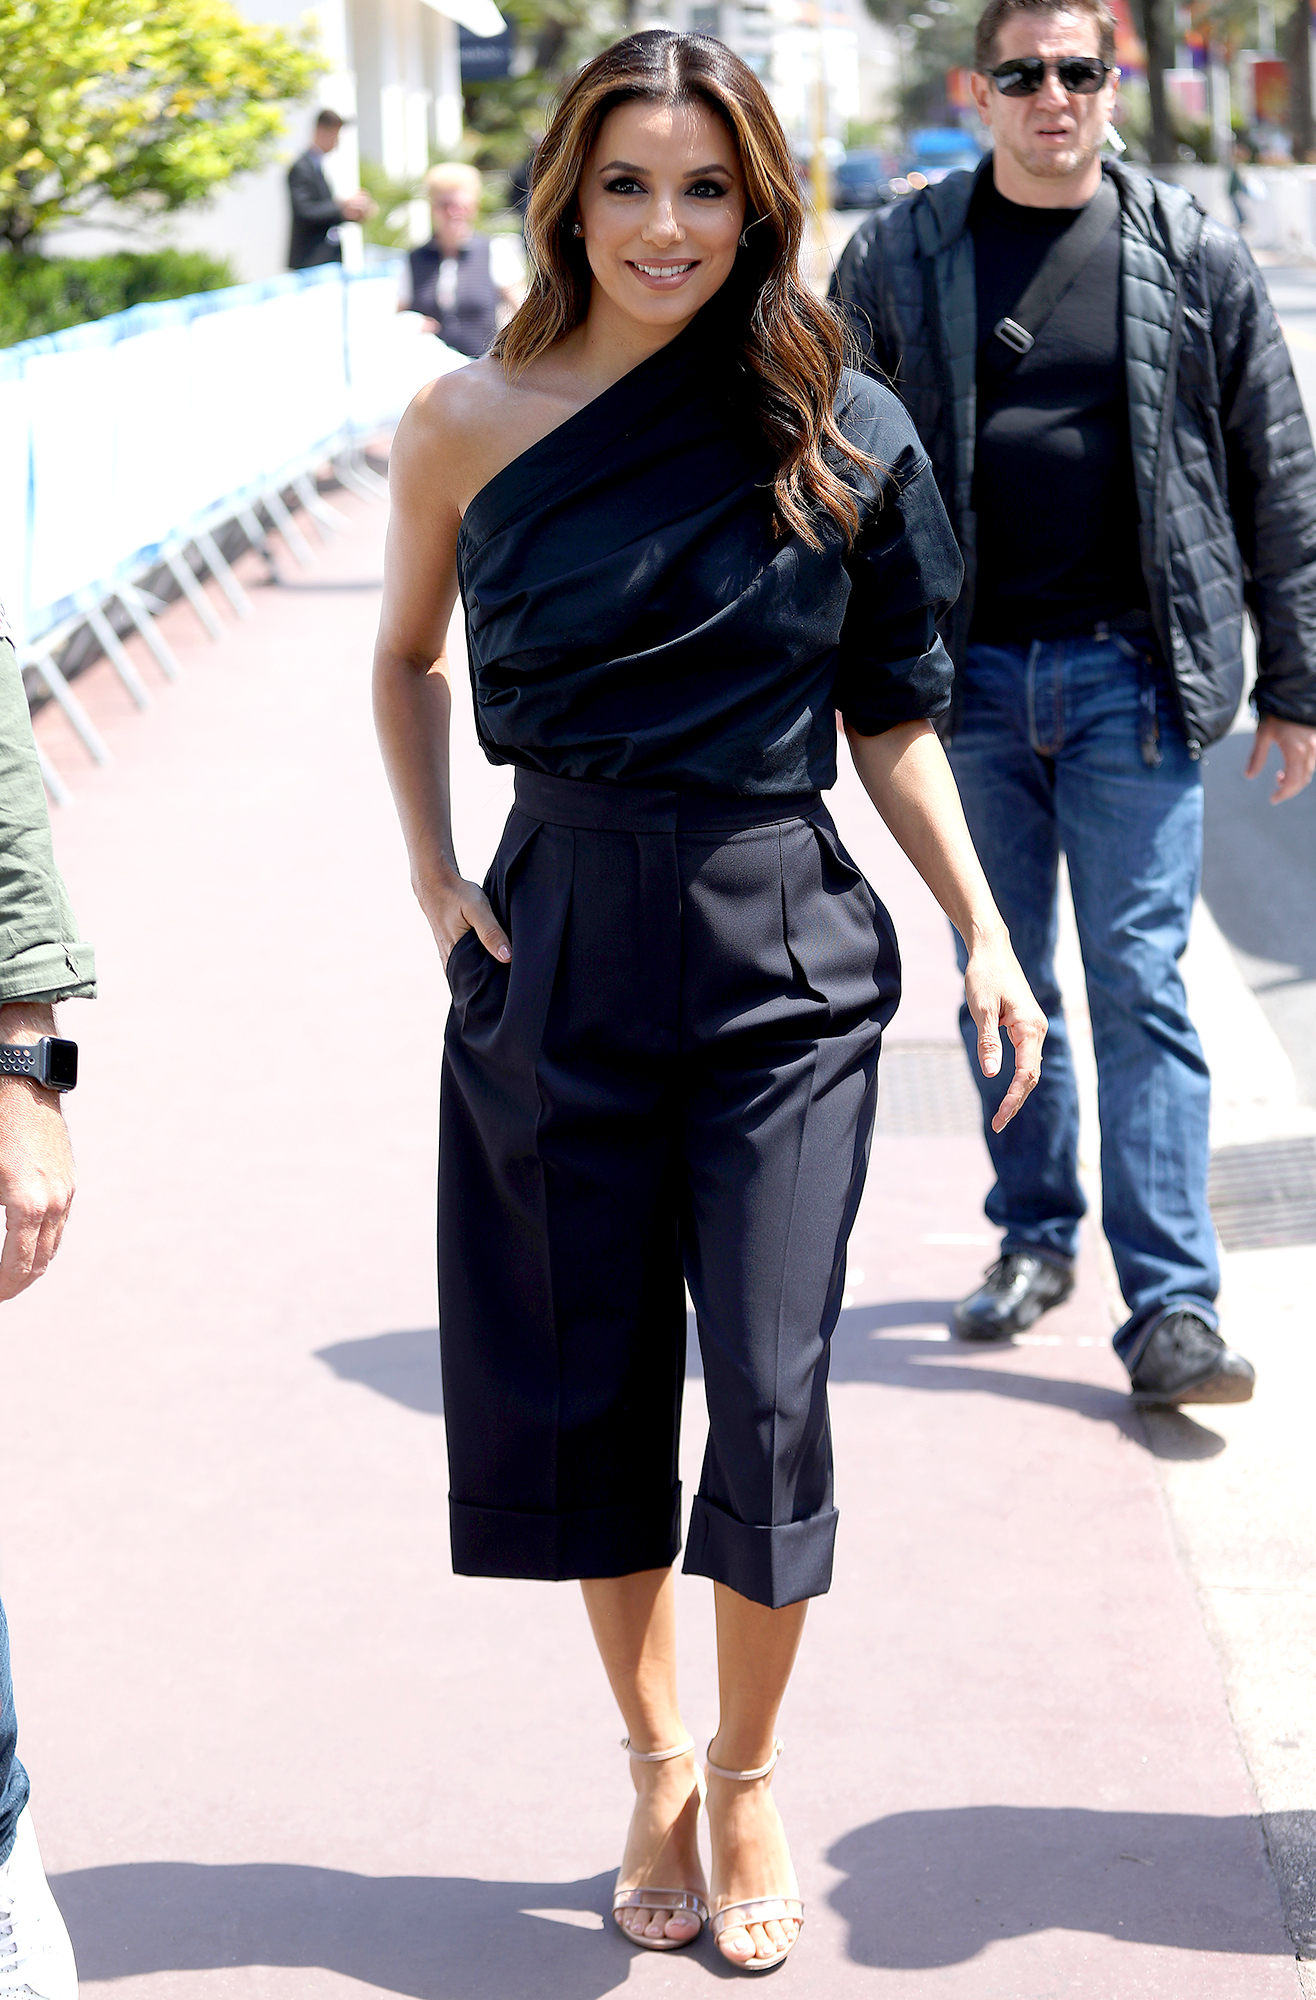 Eva-Longoria - Très chic is the only way to describe the Max Mara one-shoulder top and cropped trousers the brunette beauty wore on Wednesday, May 15.